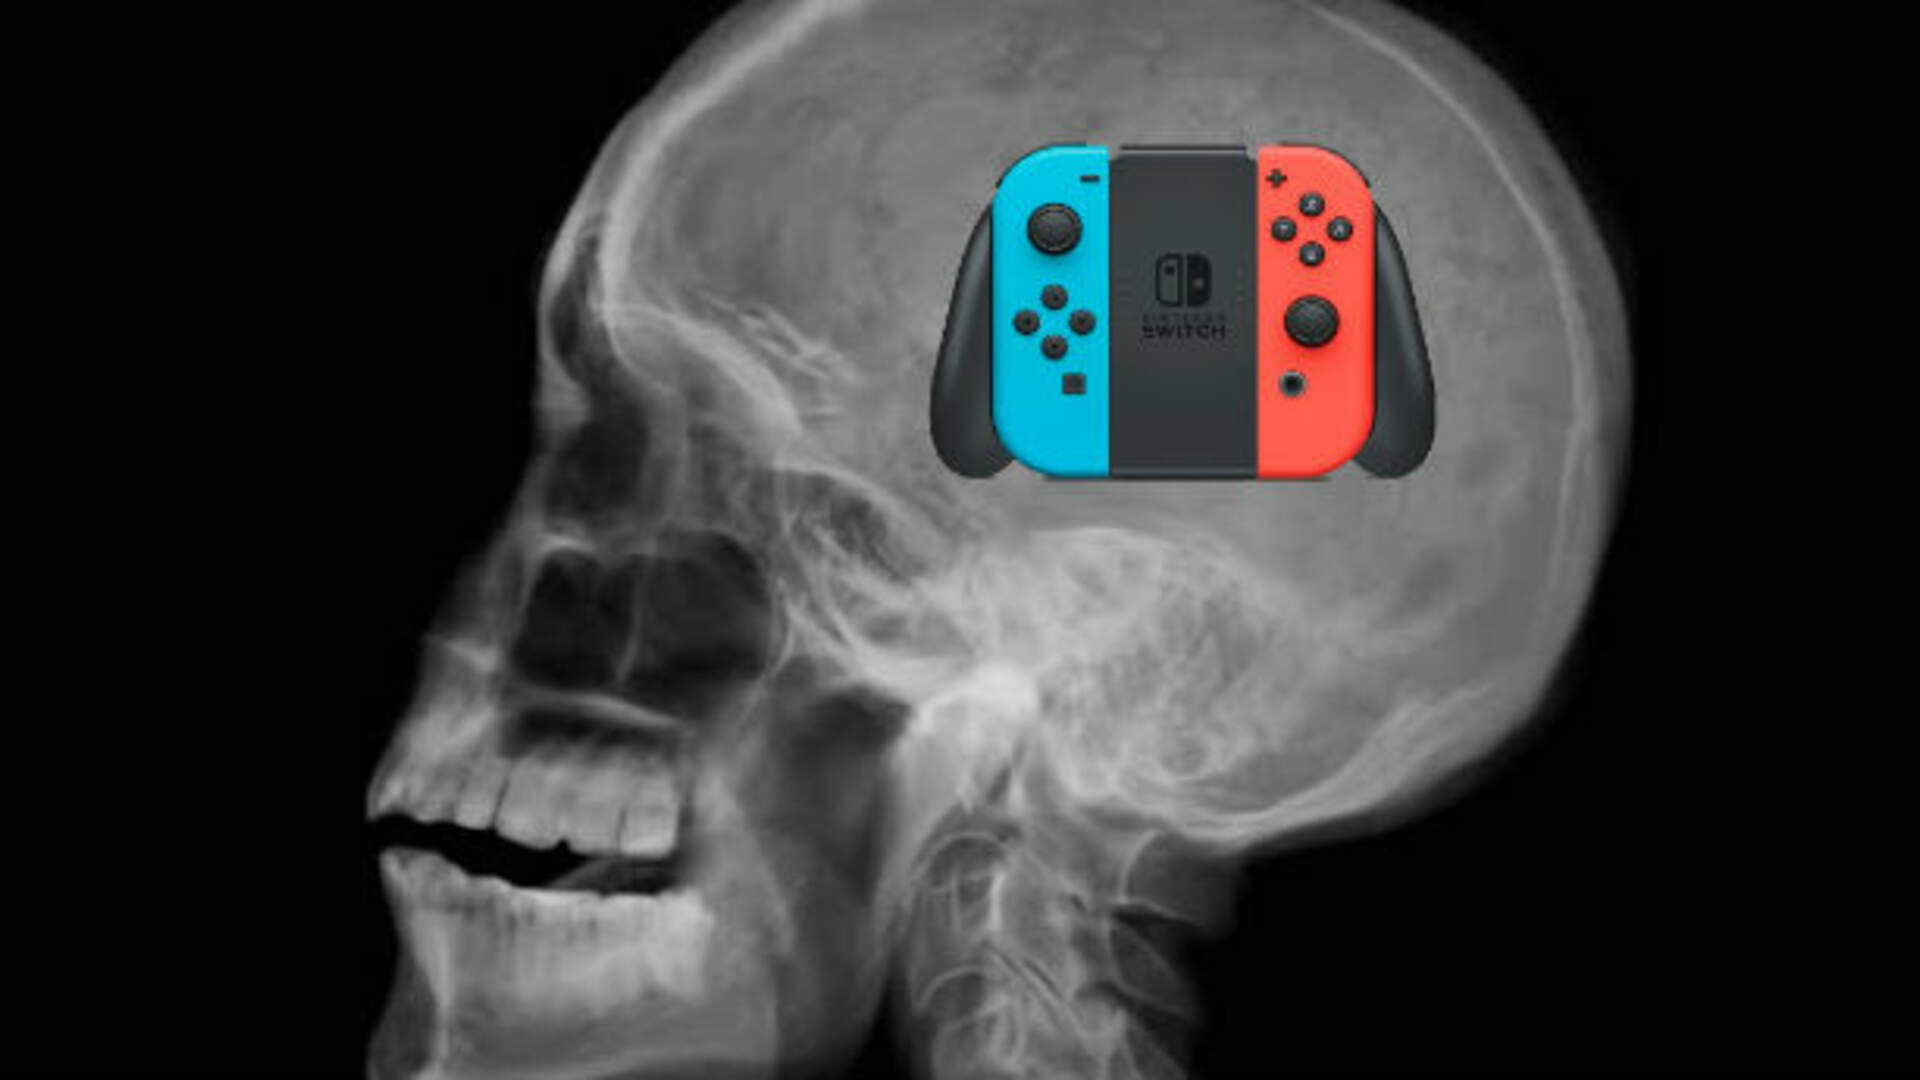 Here's an X-Ray of the Nintendo Switch's Guts